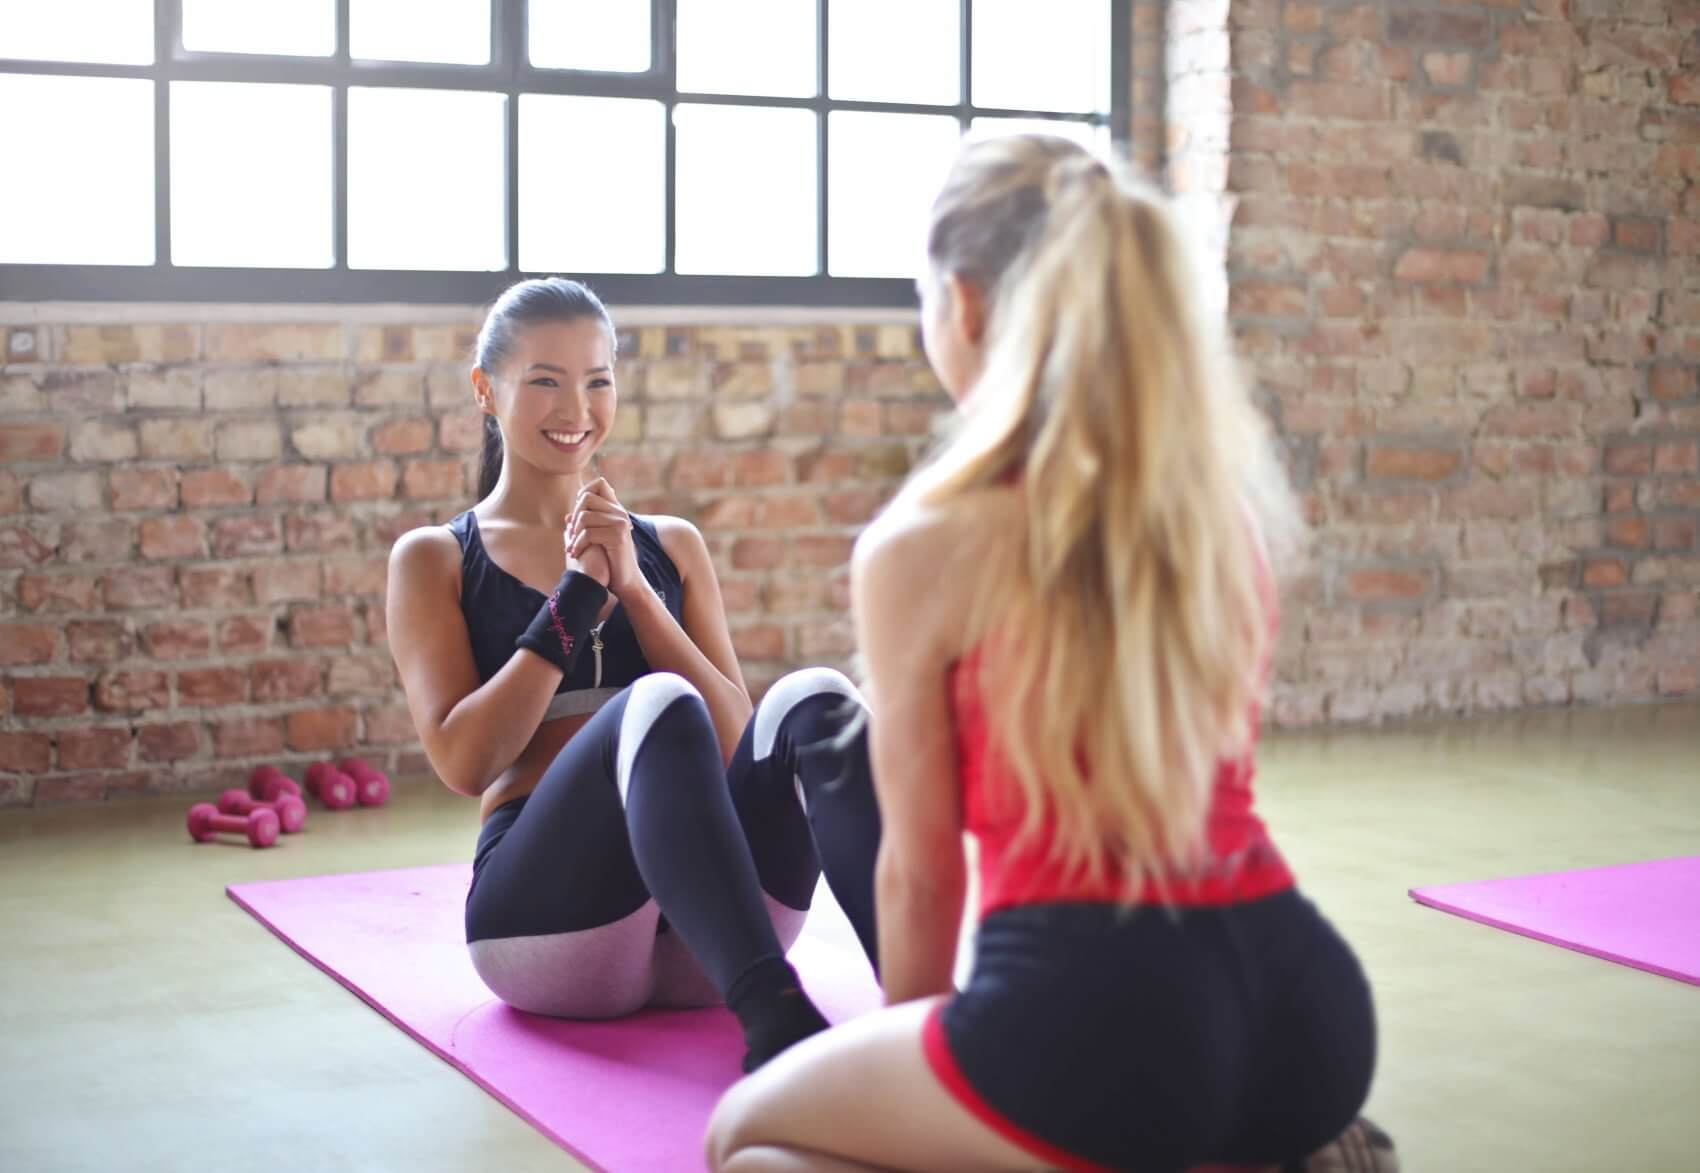 Paired Yoga   The Mustcard